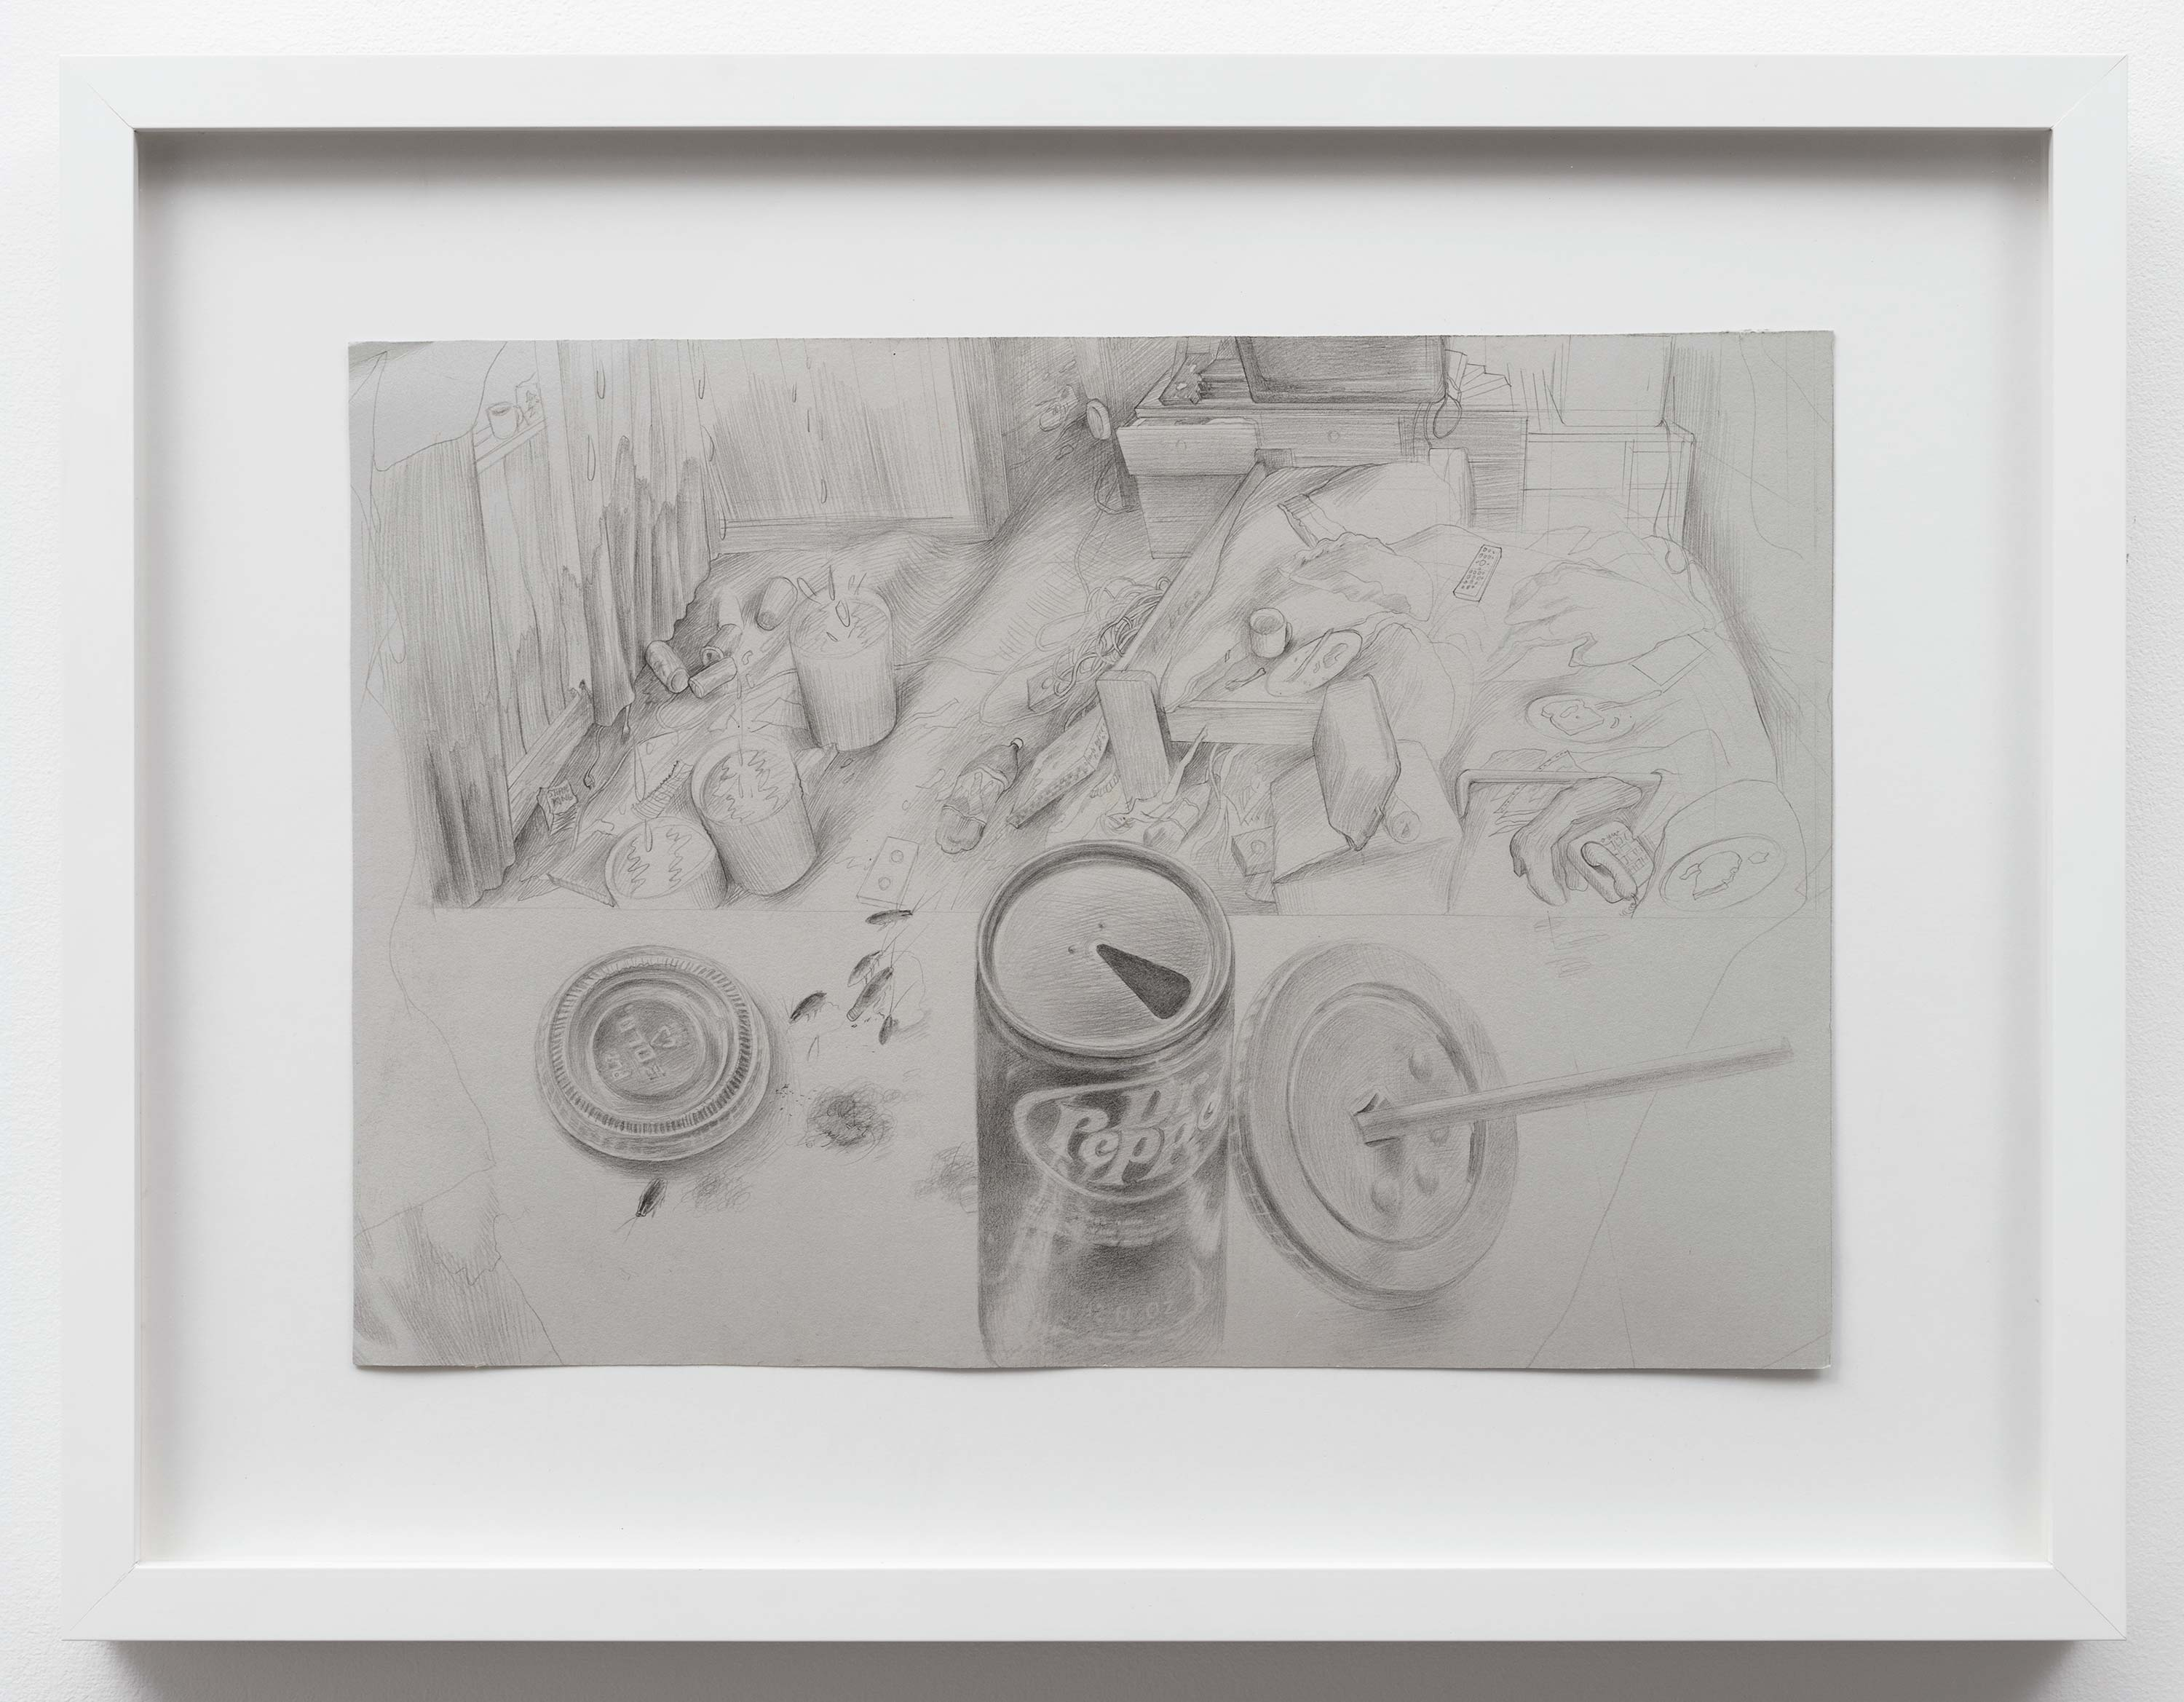 Brandi Twilley<br>Dr. Pepper and Living Room<br>2014<br>Graphite on gray paper<br>15 x 10.5 inches (38 x 26.5 cm)